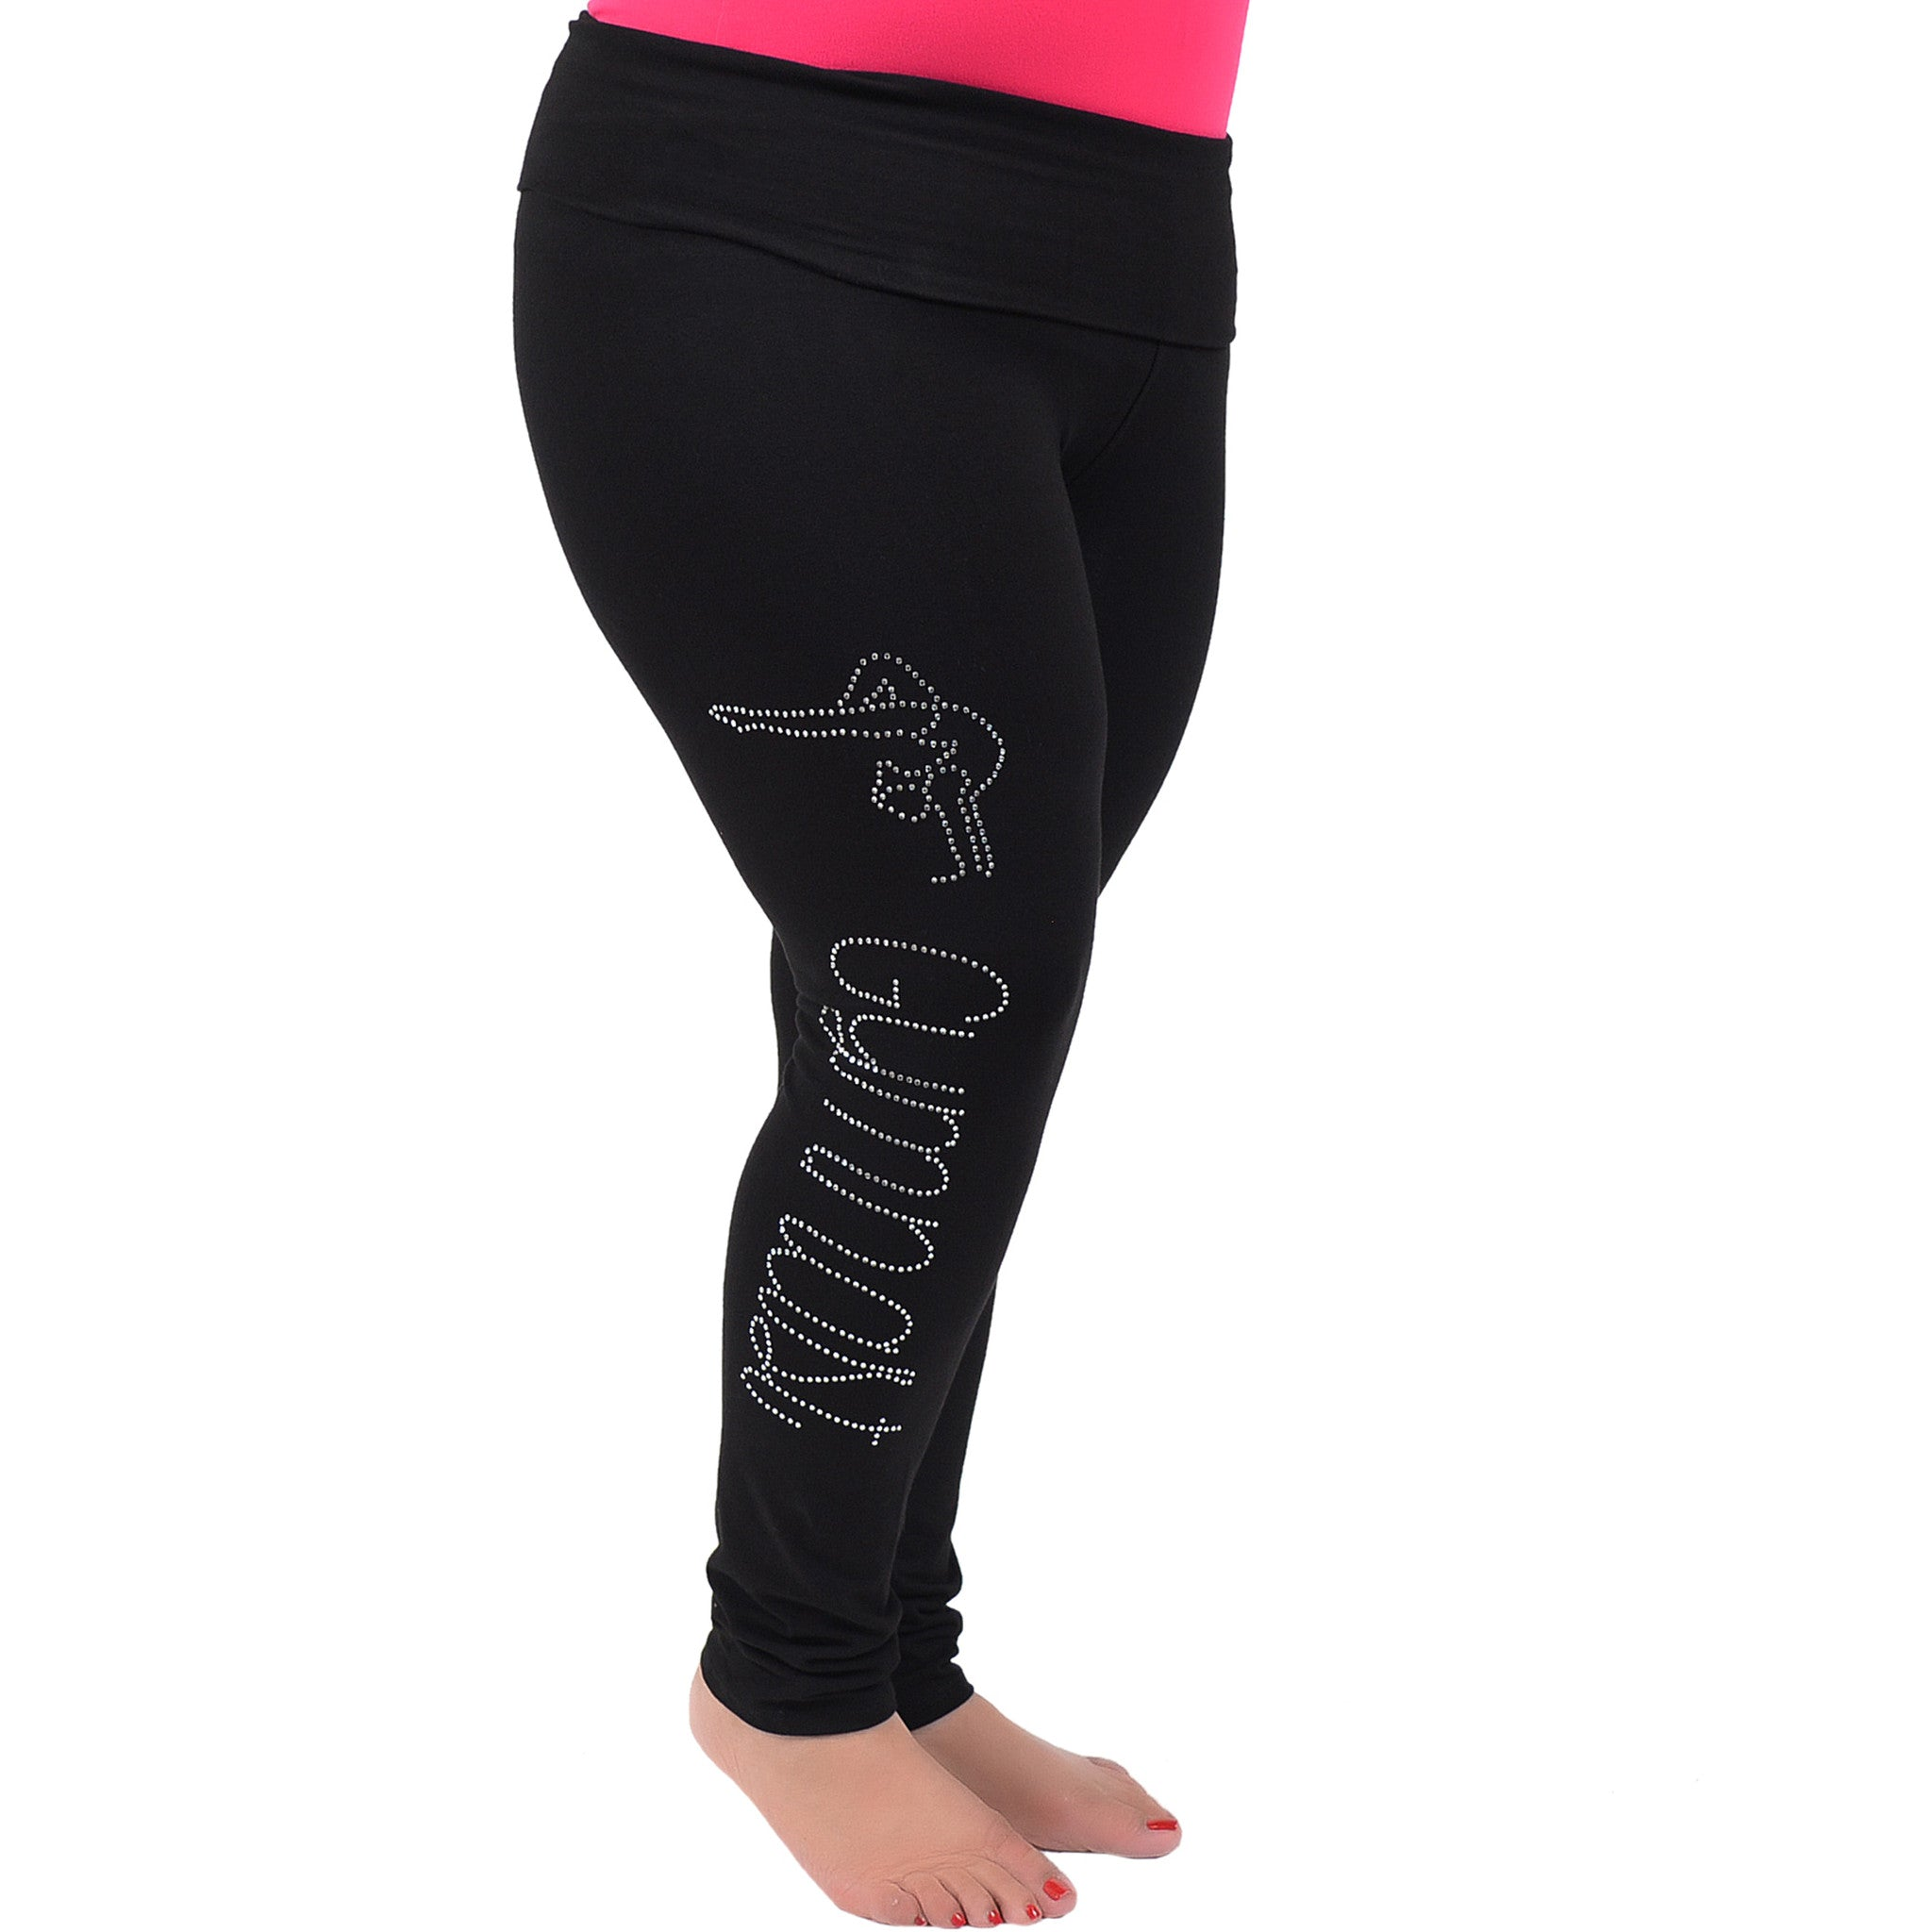 Plus Size Gymnast Rhinestone Foldover Cotton Leggings